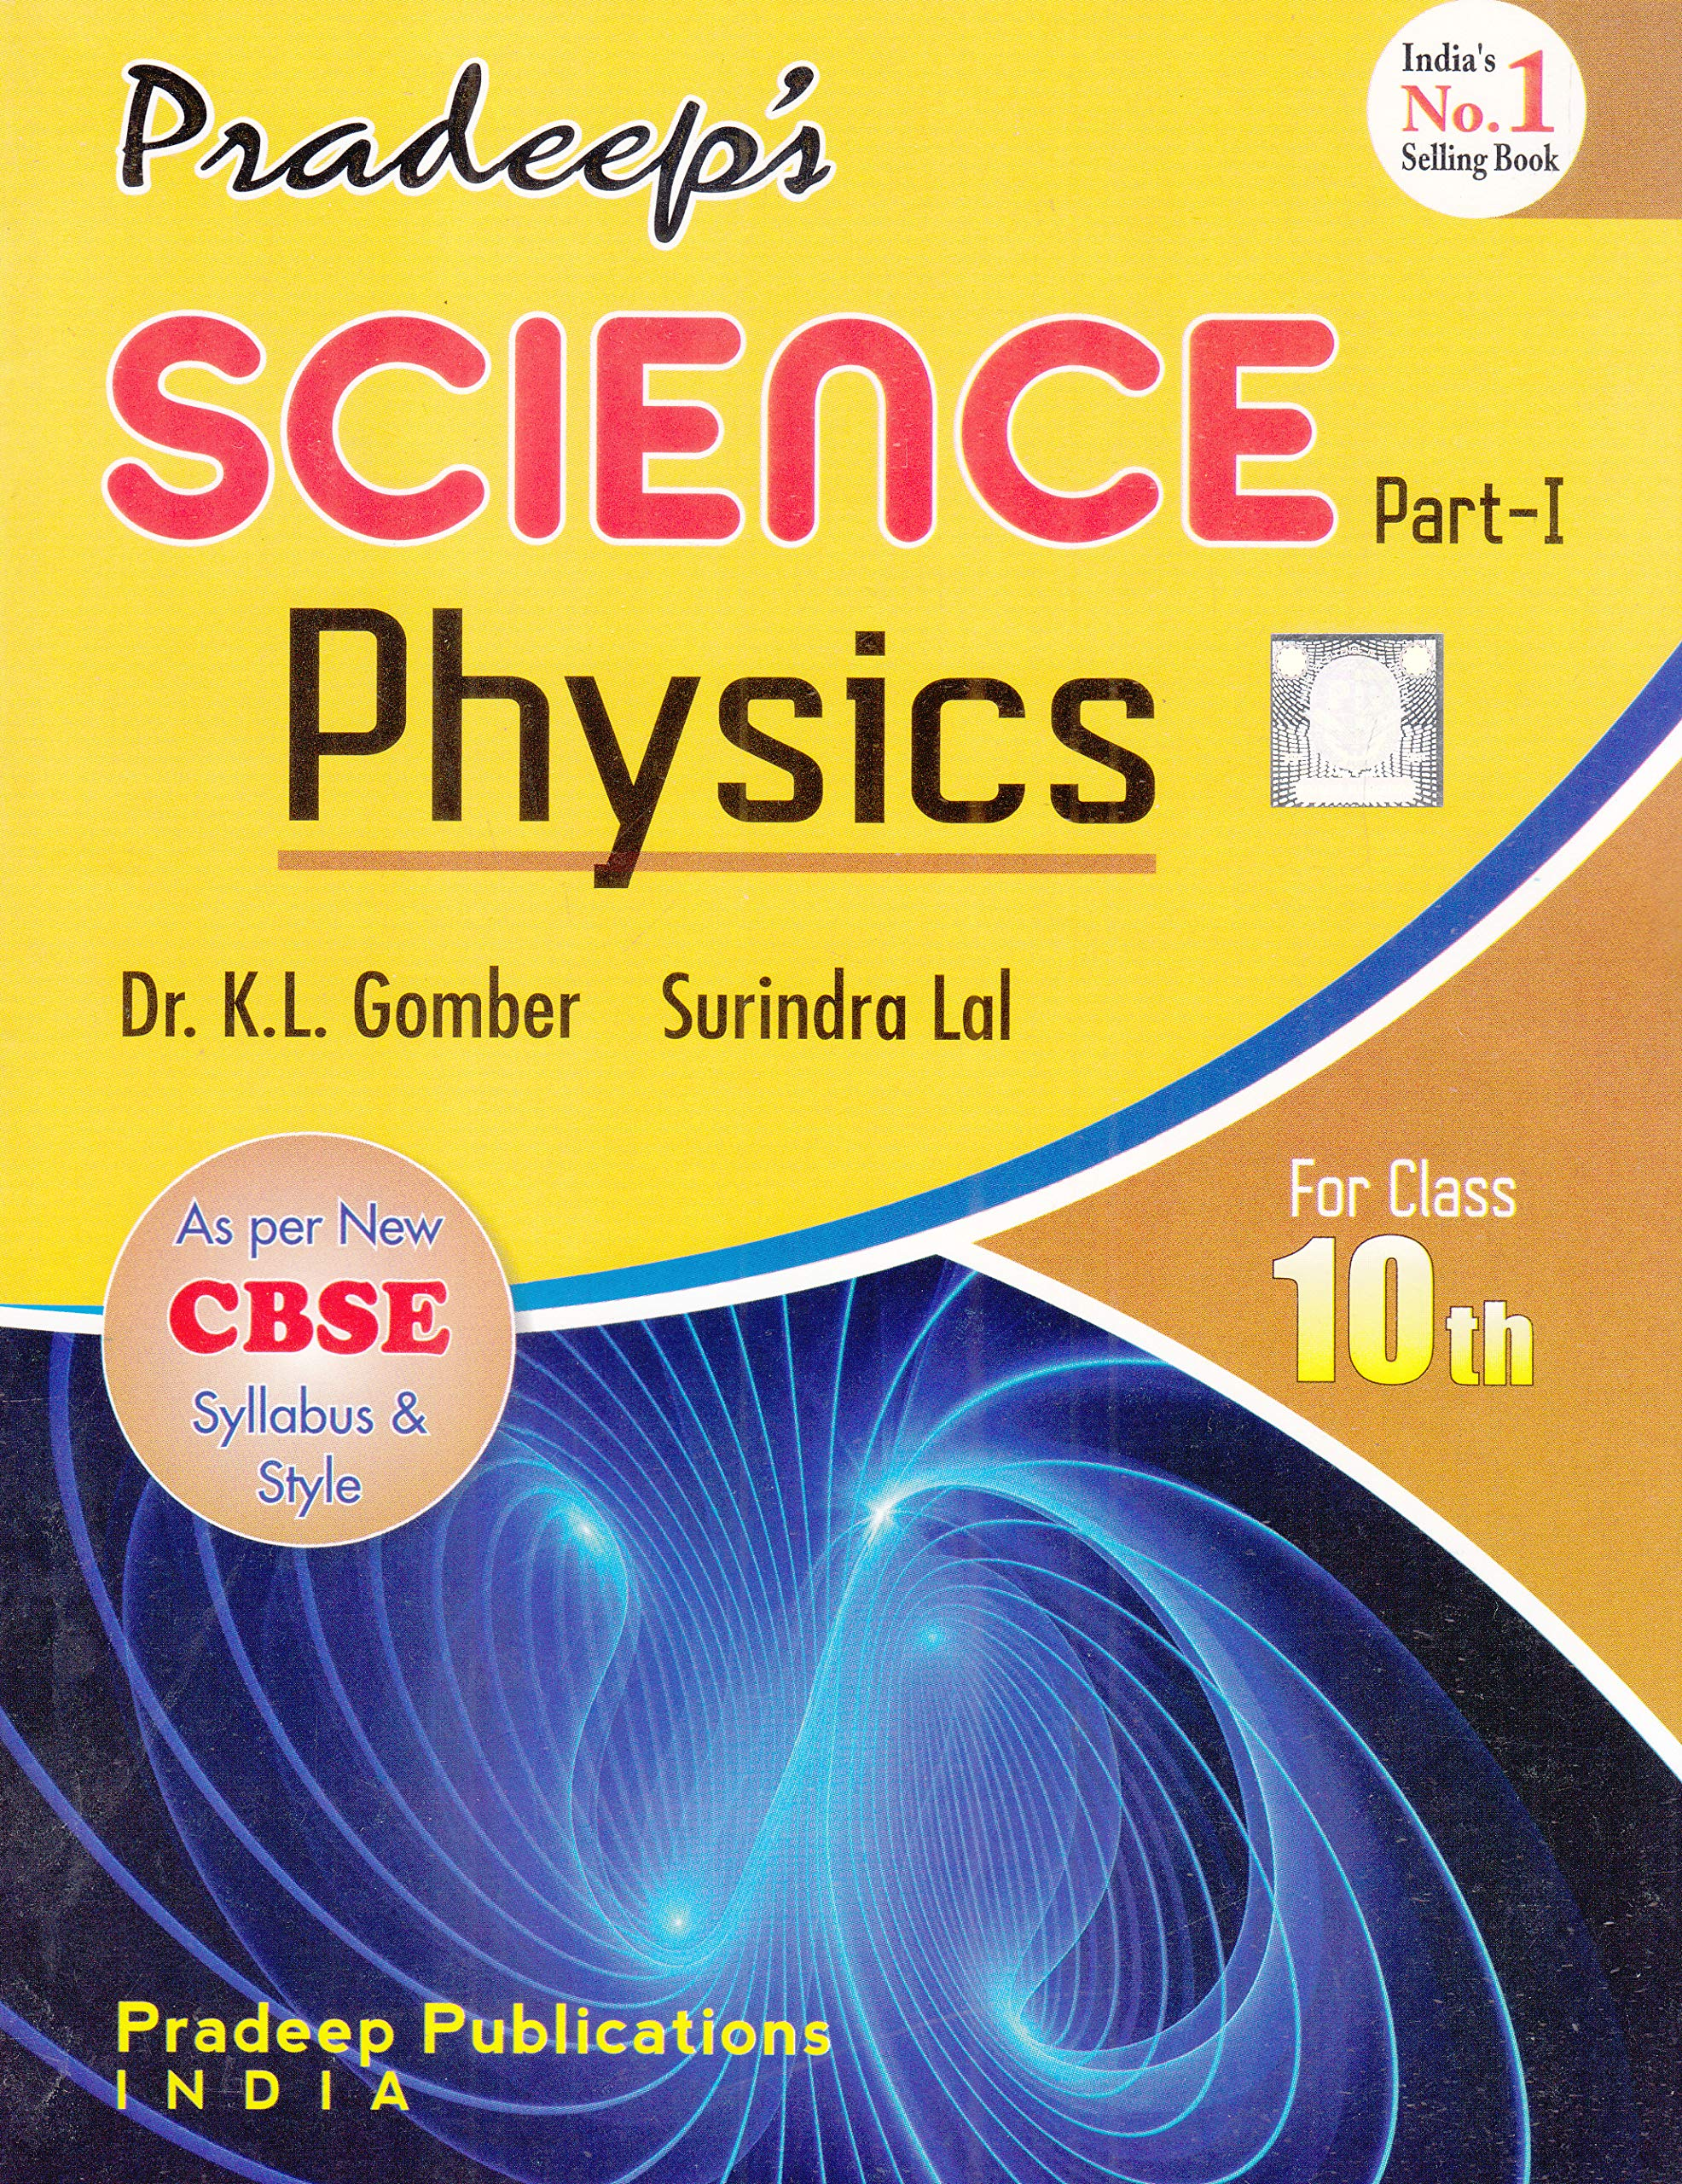 Pardeep's Science Physics Part-1 for Class 10th 2019-2020